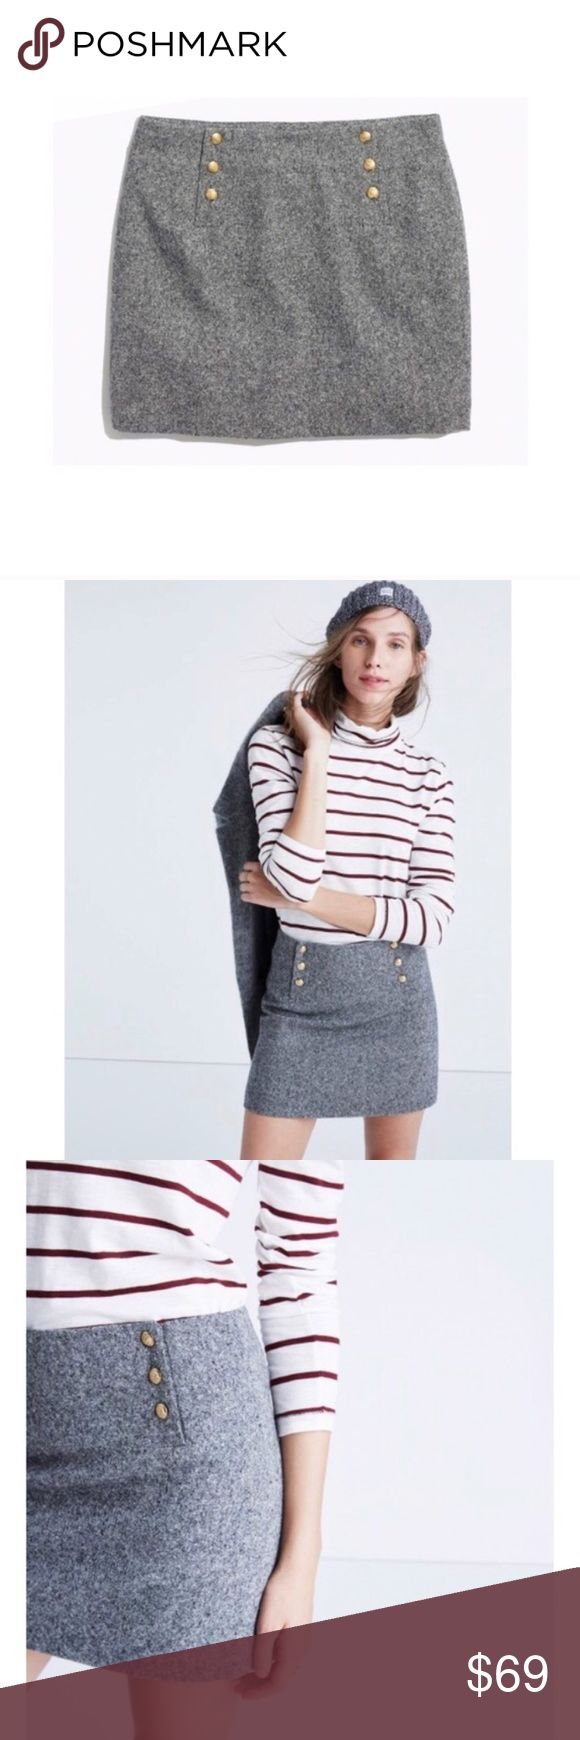 Madewell et Śezane Wool Skirt A collaboration between Madewell and Śezane. 100% authentic from Madewell. Wool blend. Never been worn! SOLD OUT EVERYWHERE!! Madewell Skirts Mini